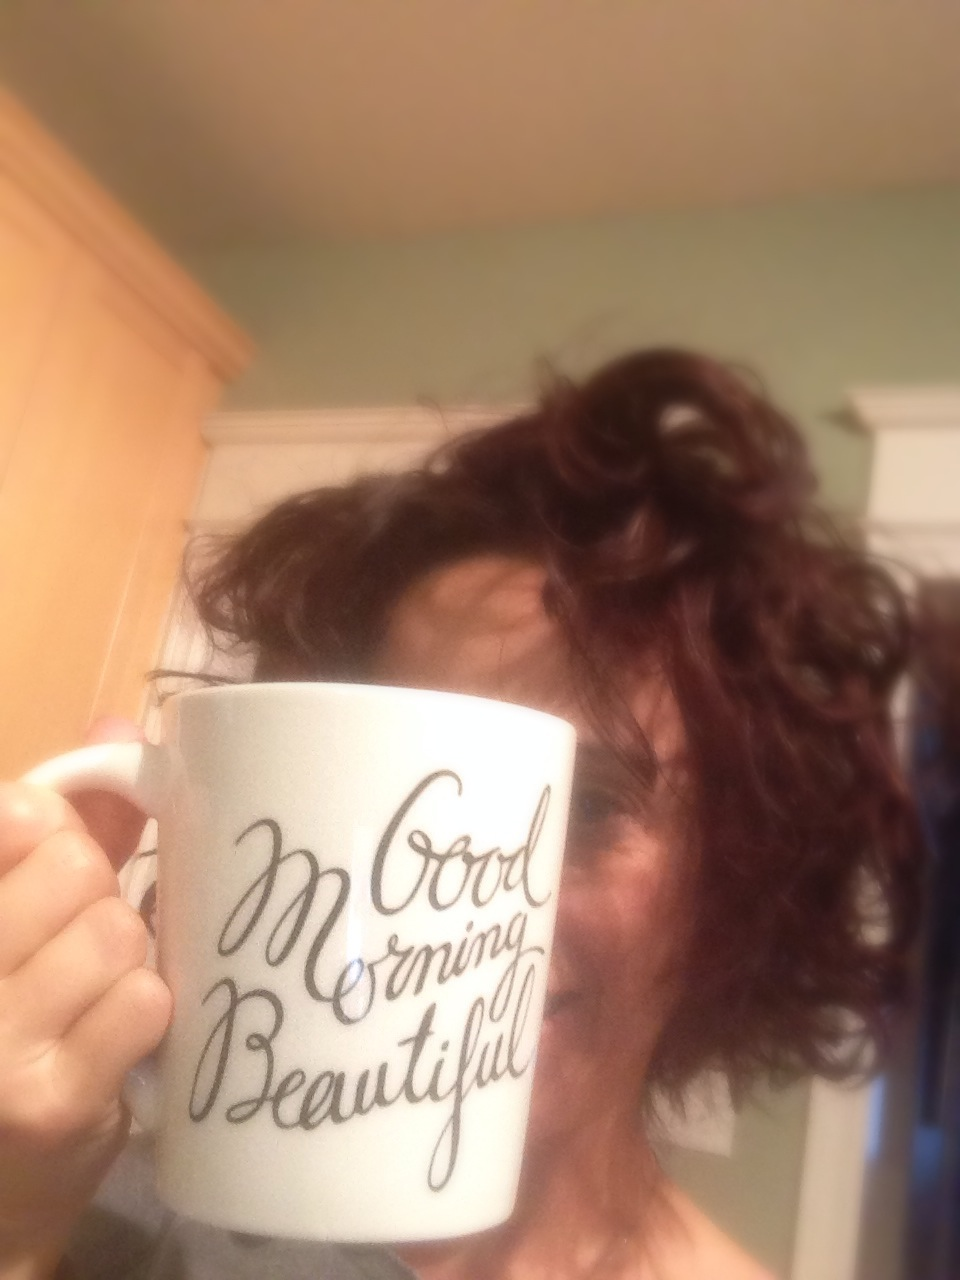 the gallery for gt good morning gorgeous coffee mug